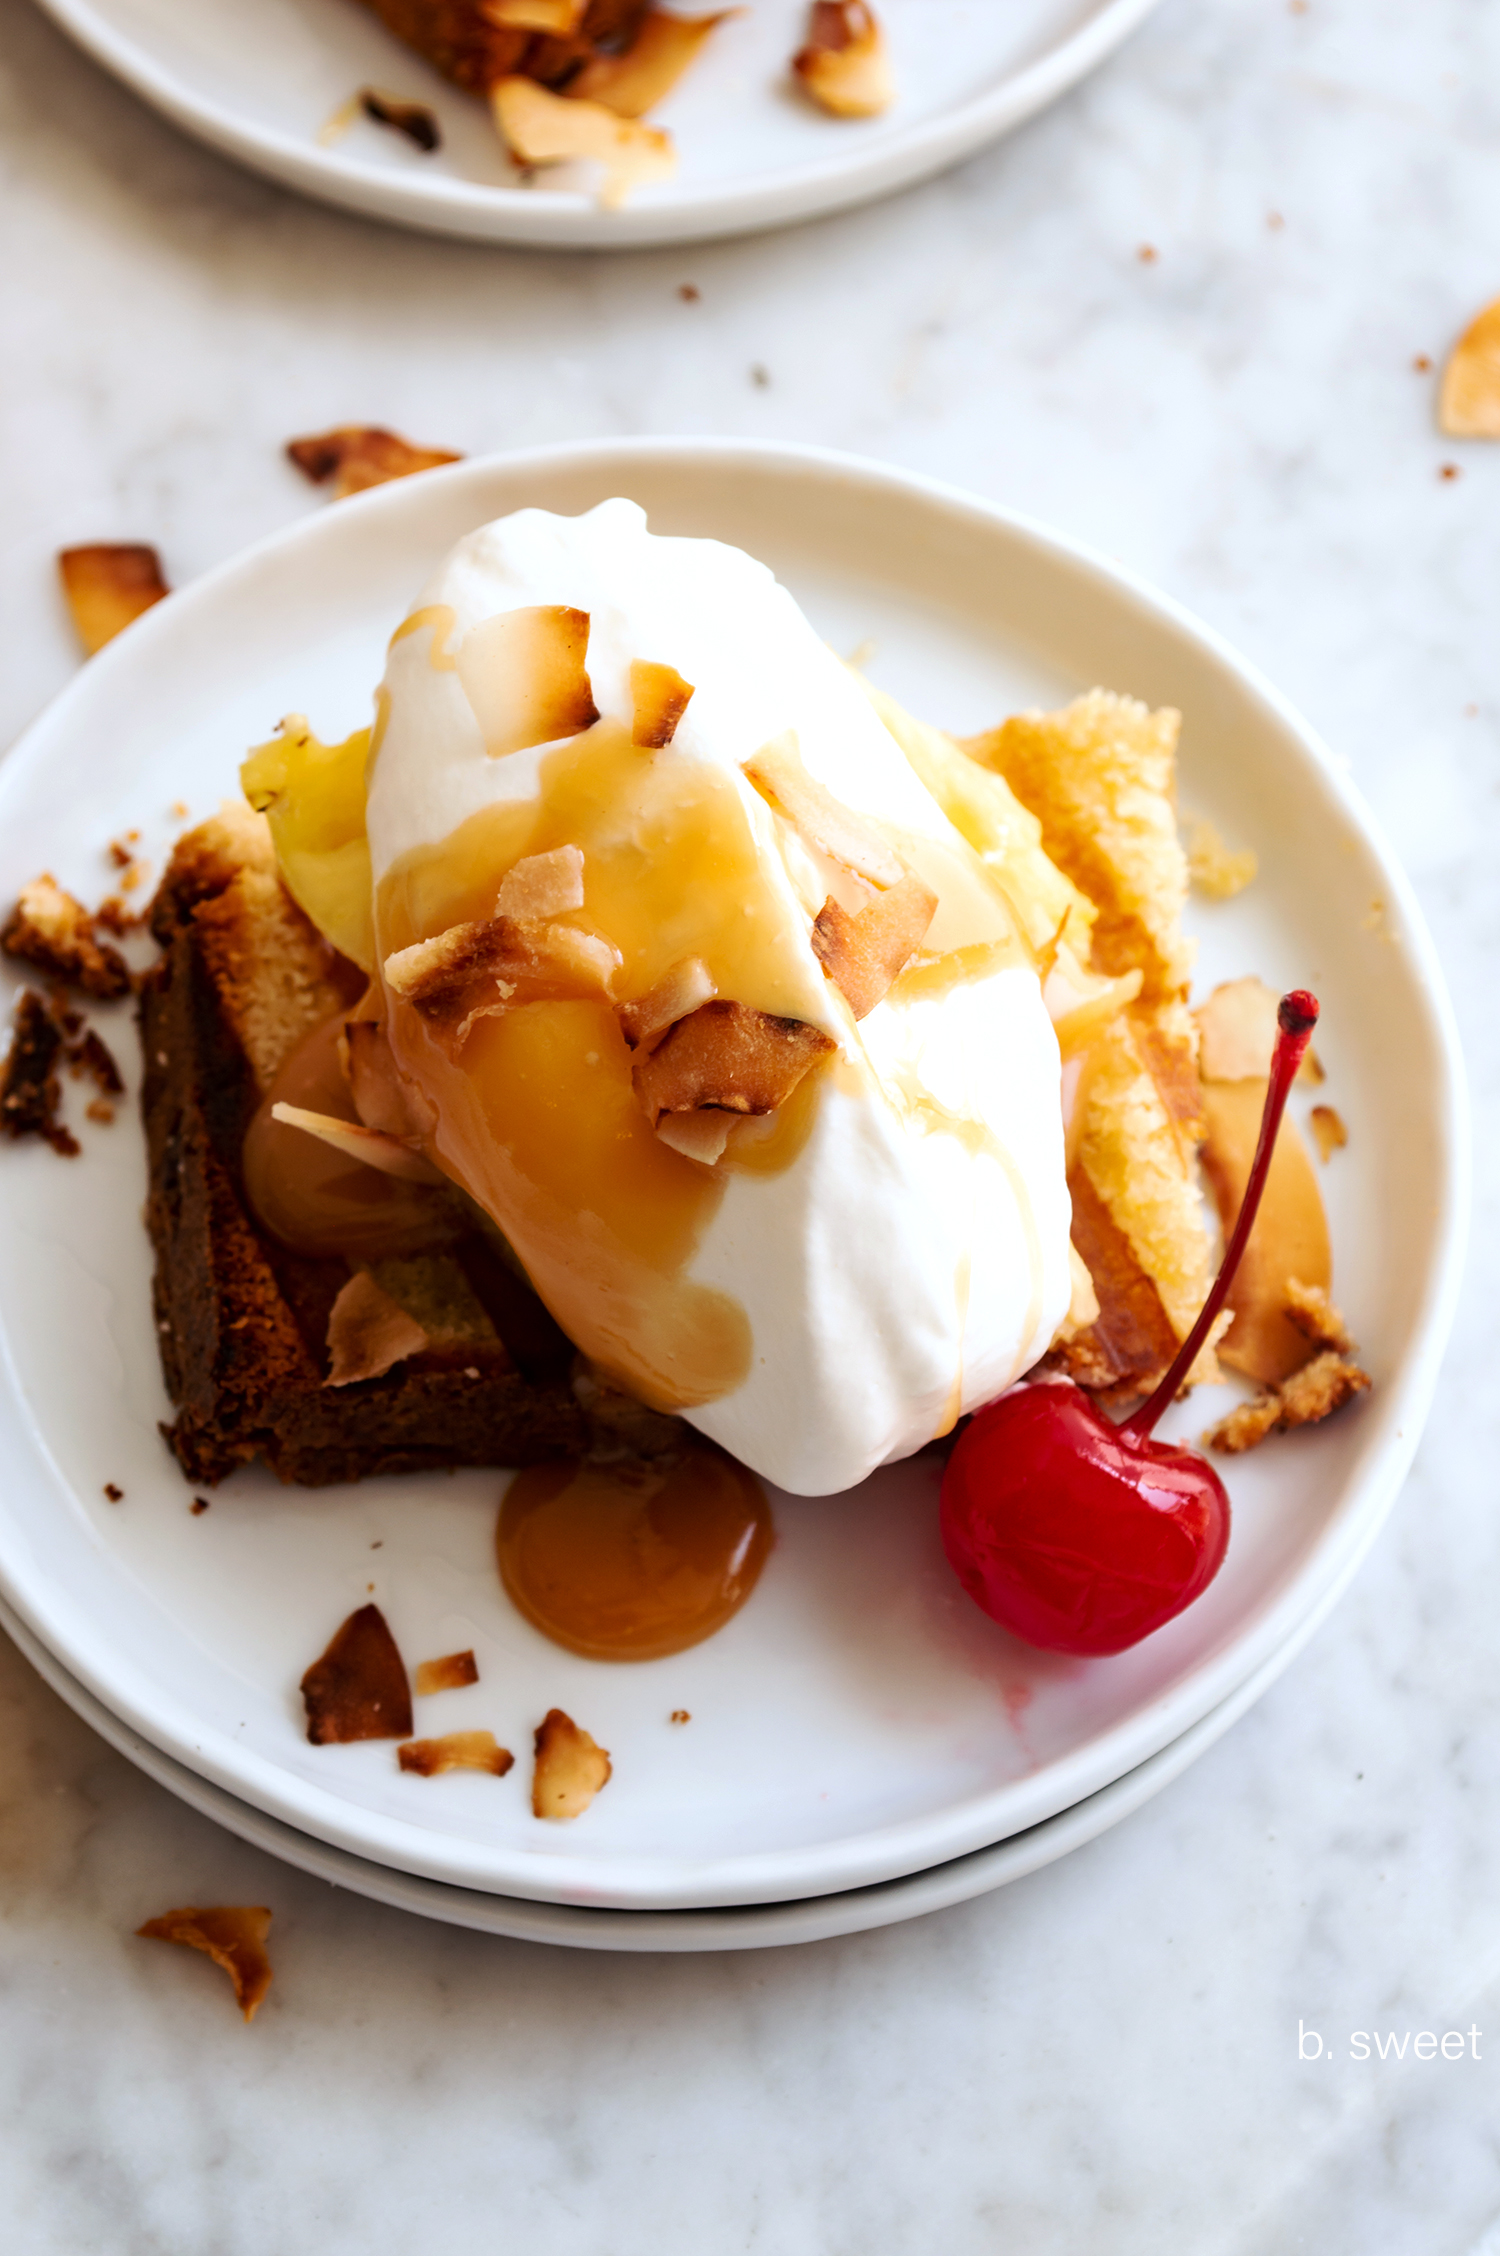 Grilled Pineapple Pound Cake with Fresh Pineapple and Dark Rum Coconut Caramel - b. sweet